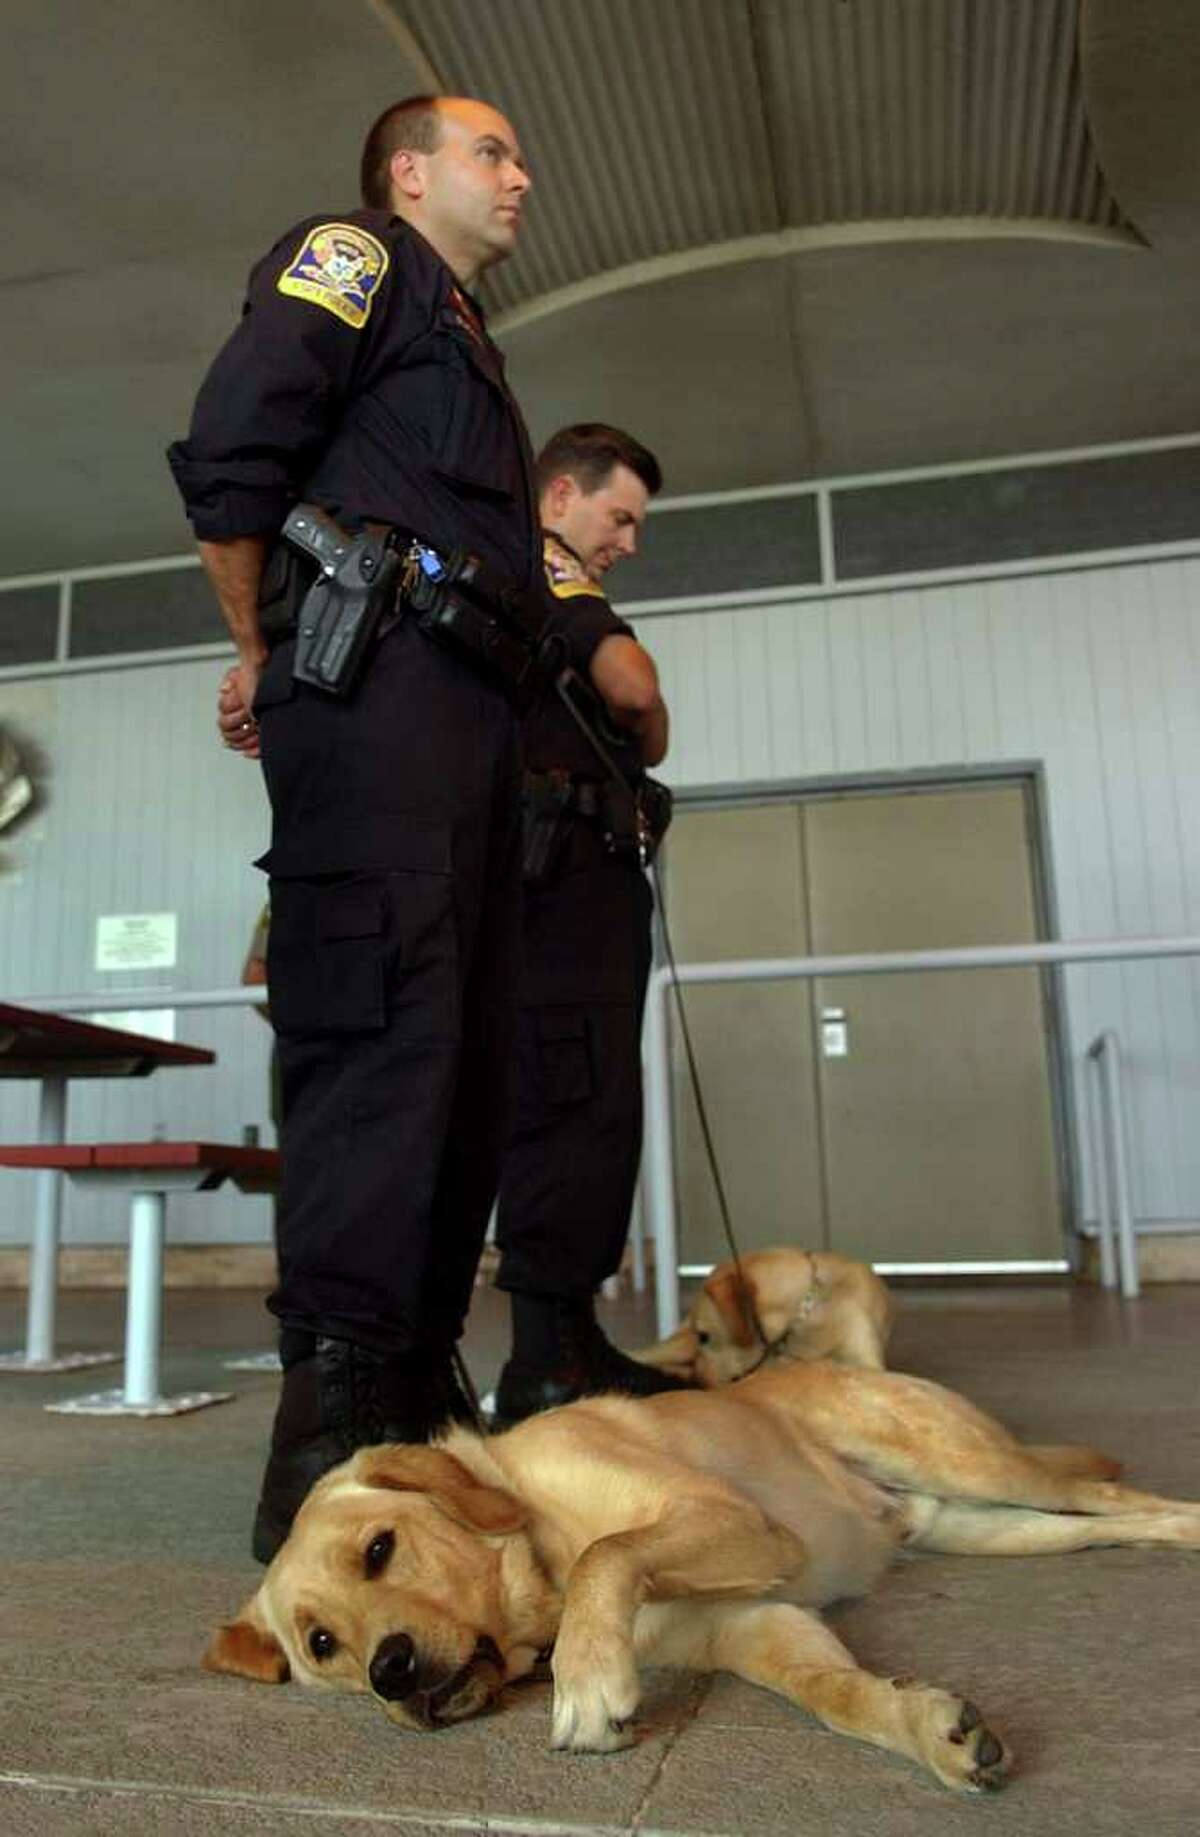 Connecticut State Police K9 Officer Mark Packer stands with his dog Regis, during a Ceremony Honoring Connecticut's 9/11 First Responders and Volunteers at Sherwood Island State Park in Westport, Conn. on Tuesday September 14, 2011.